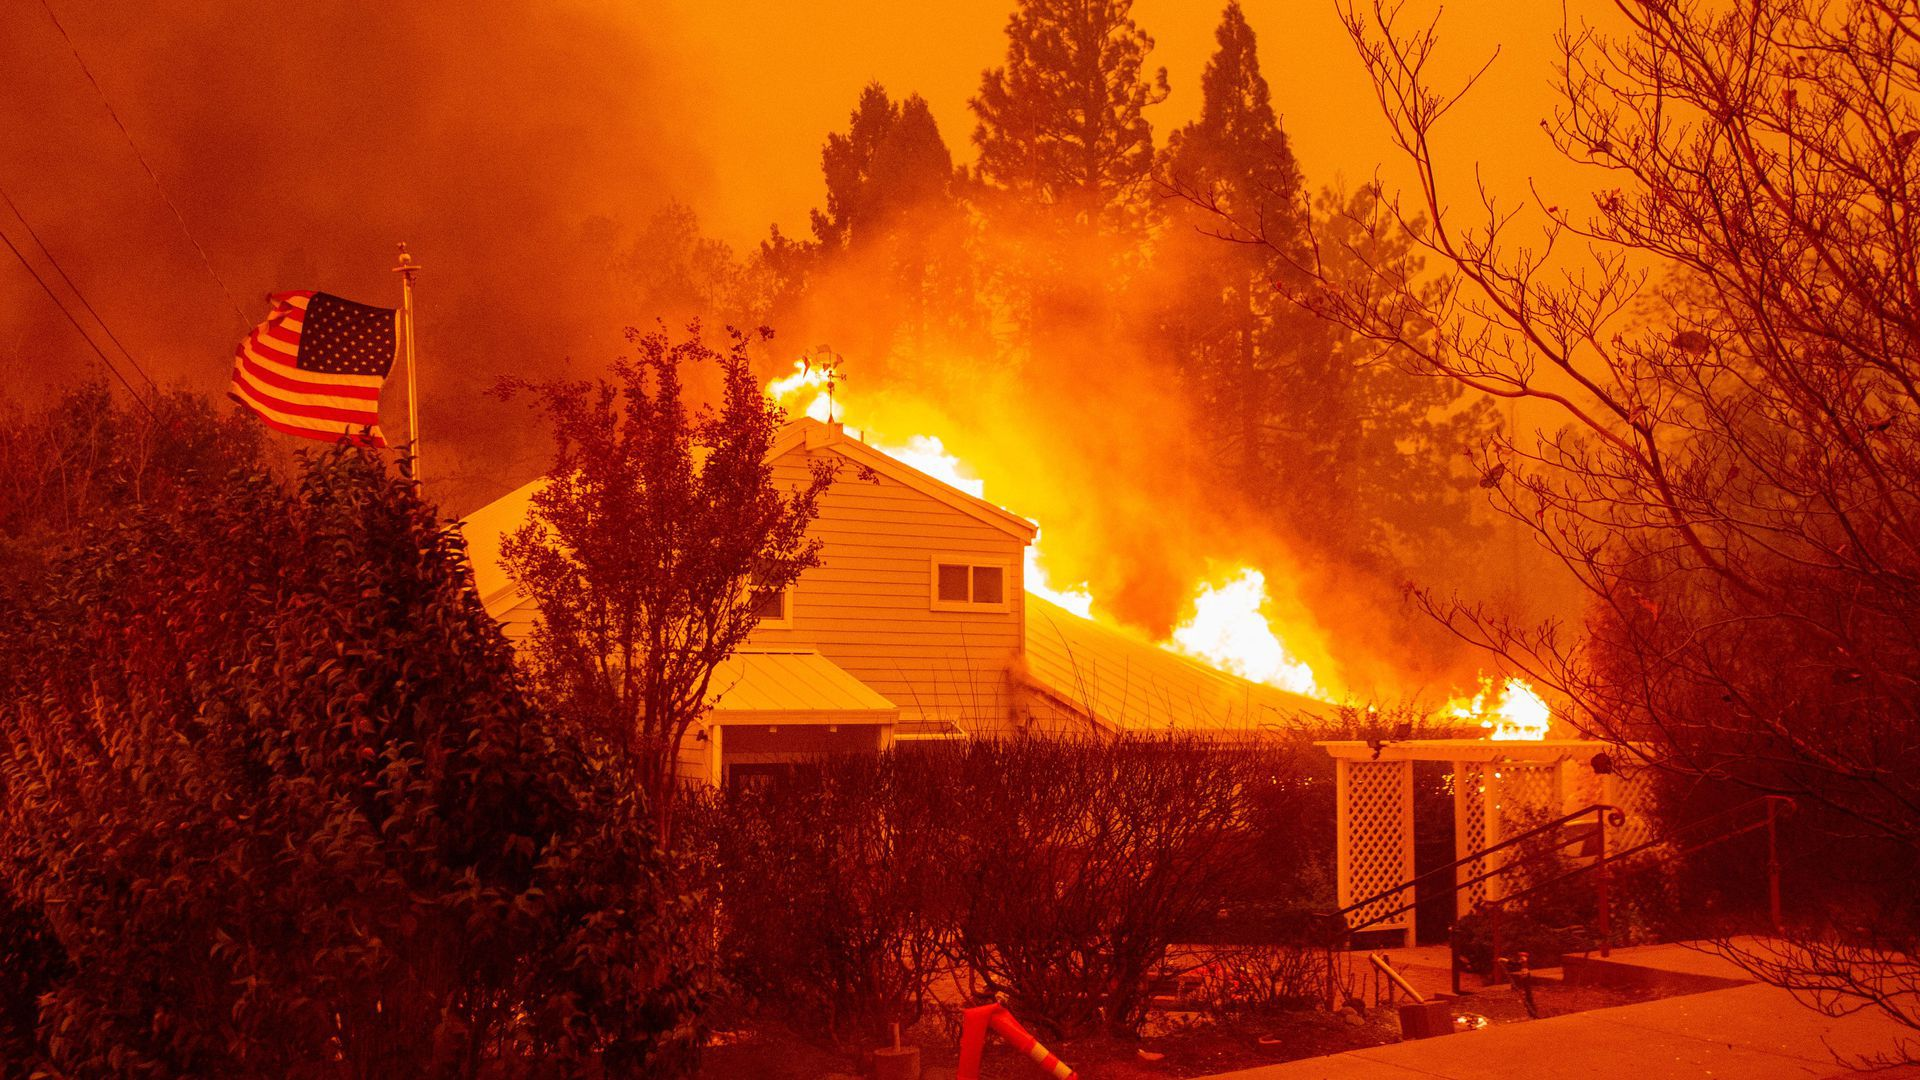 A house burns during the Camp fire in Paradise, California